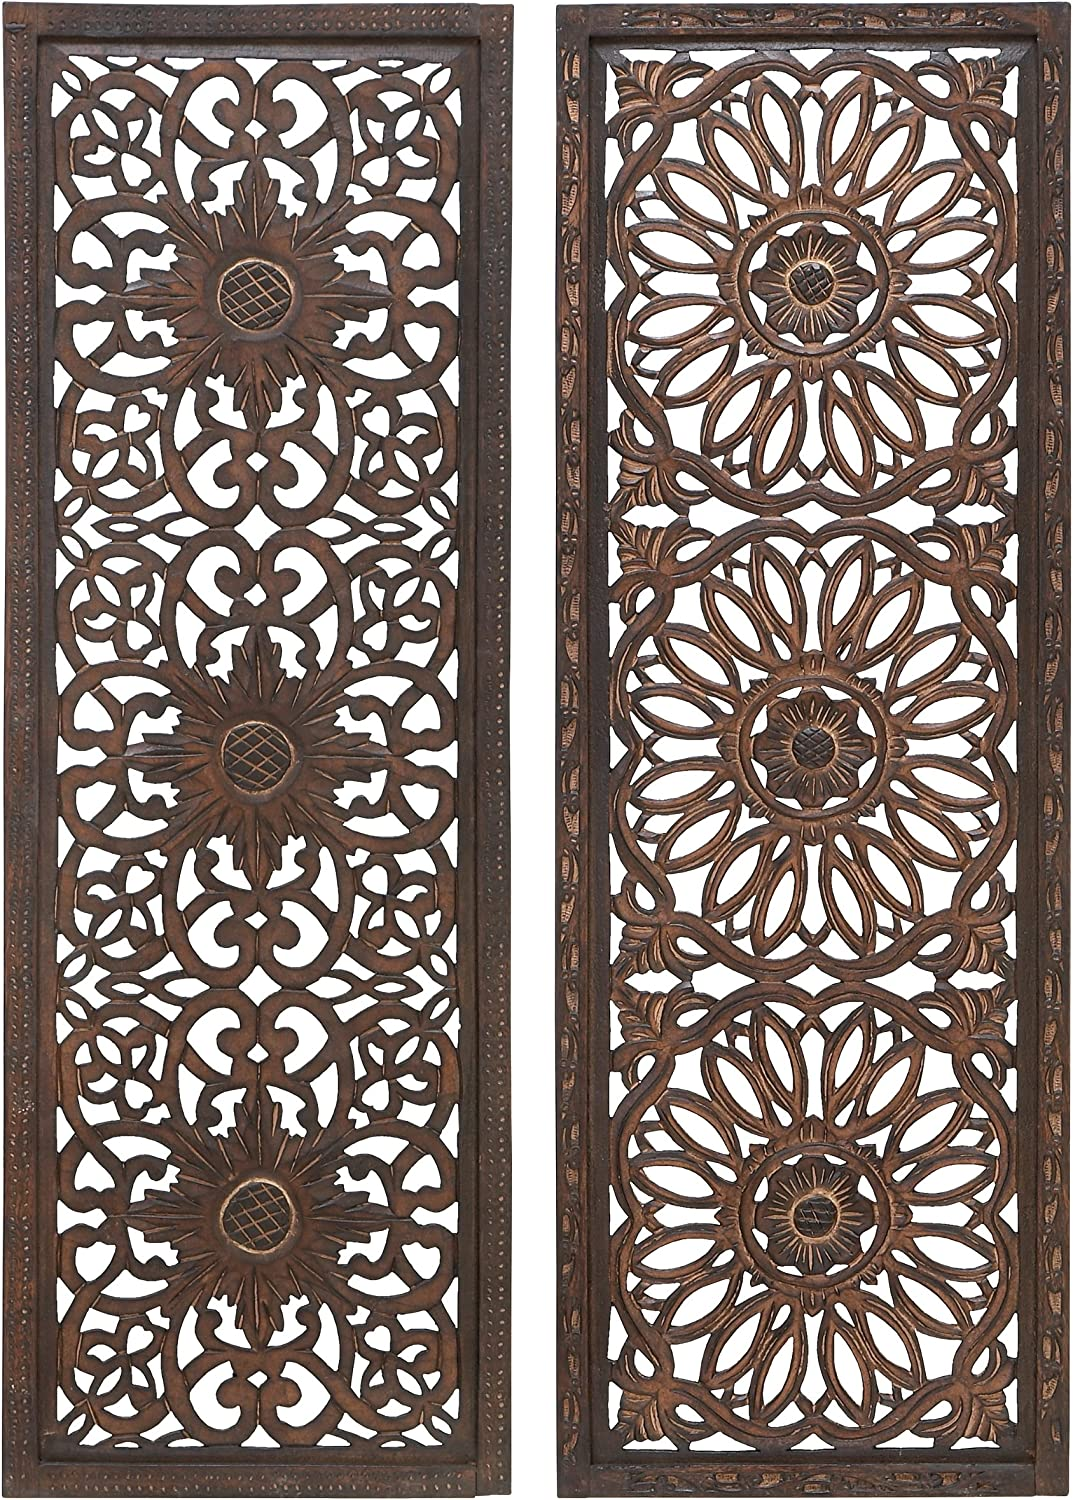 Deco 79 Set of 2 Wooden Wall Panels